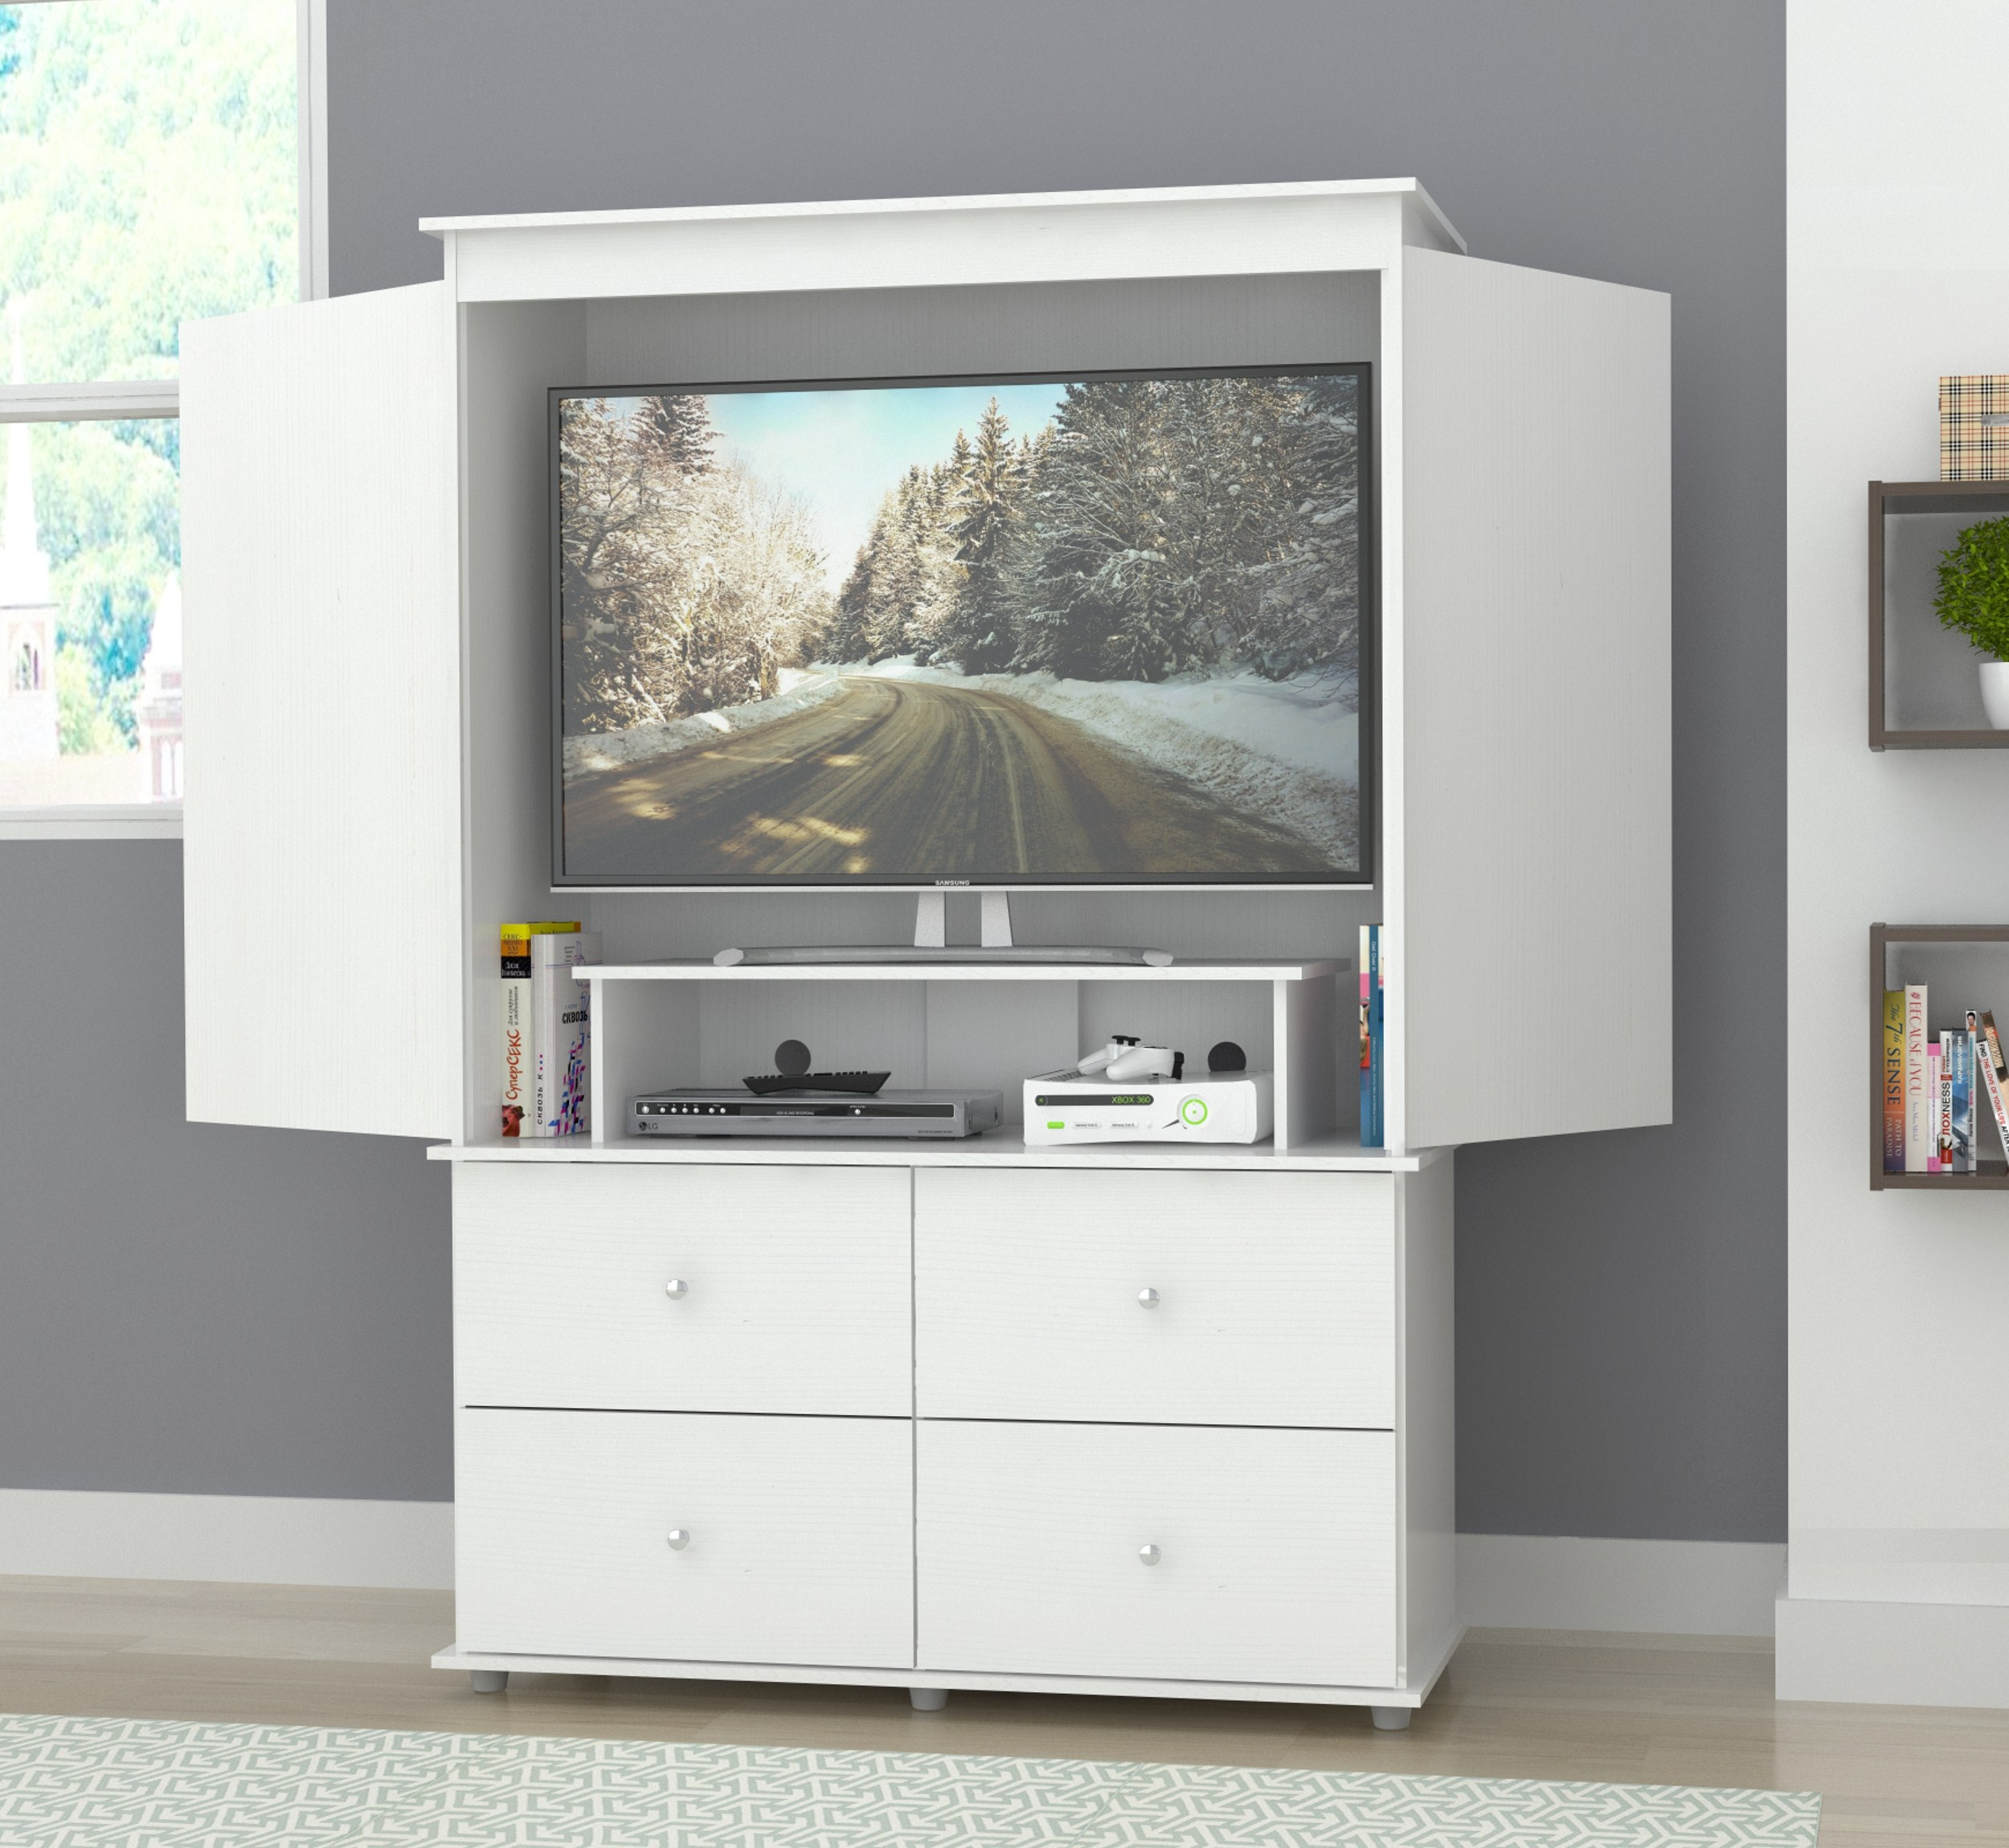 Inval Modern Laricina-white Armoire  AV Video Combo Cabinet by Inval